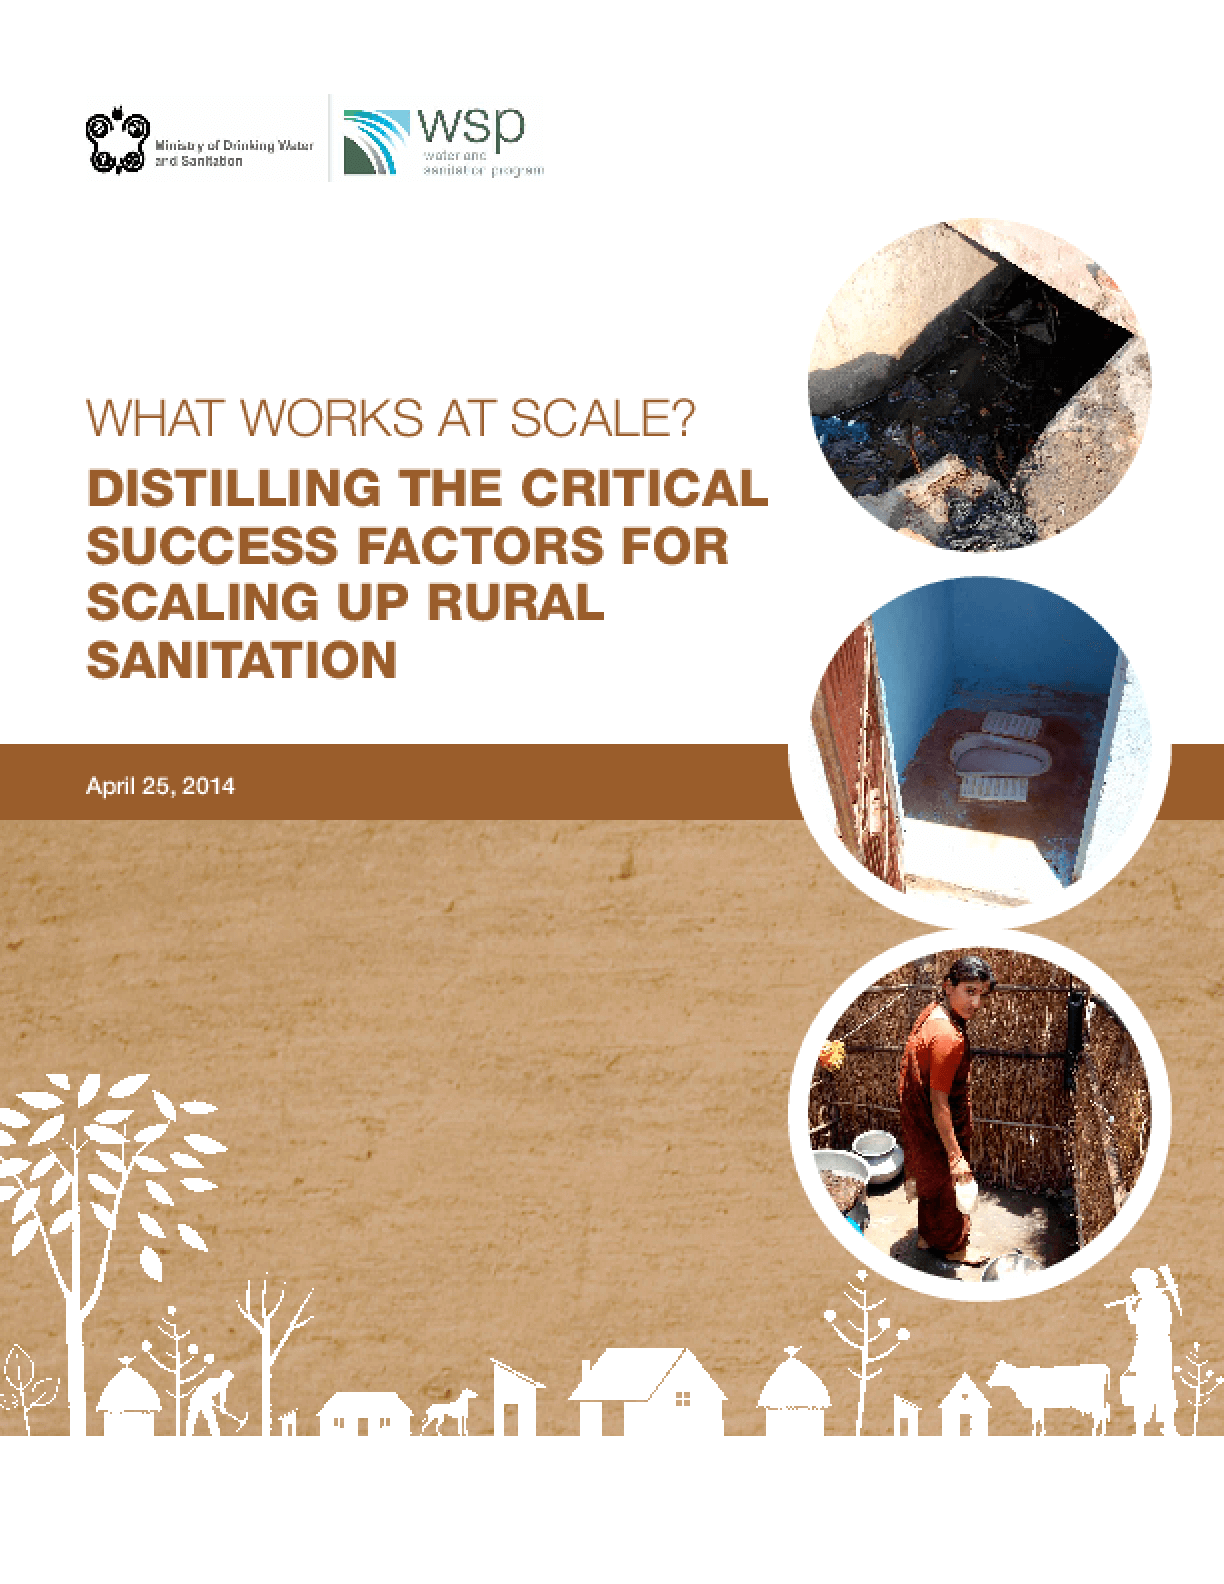 What Works at Scale? Distilling the Critical Success Factors for Scaling Up Rural Sanitation